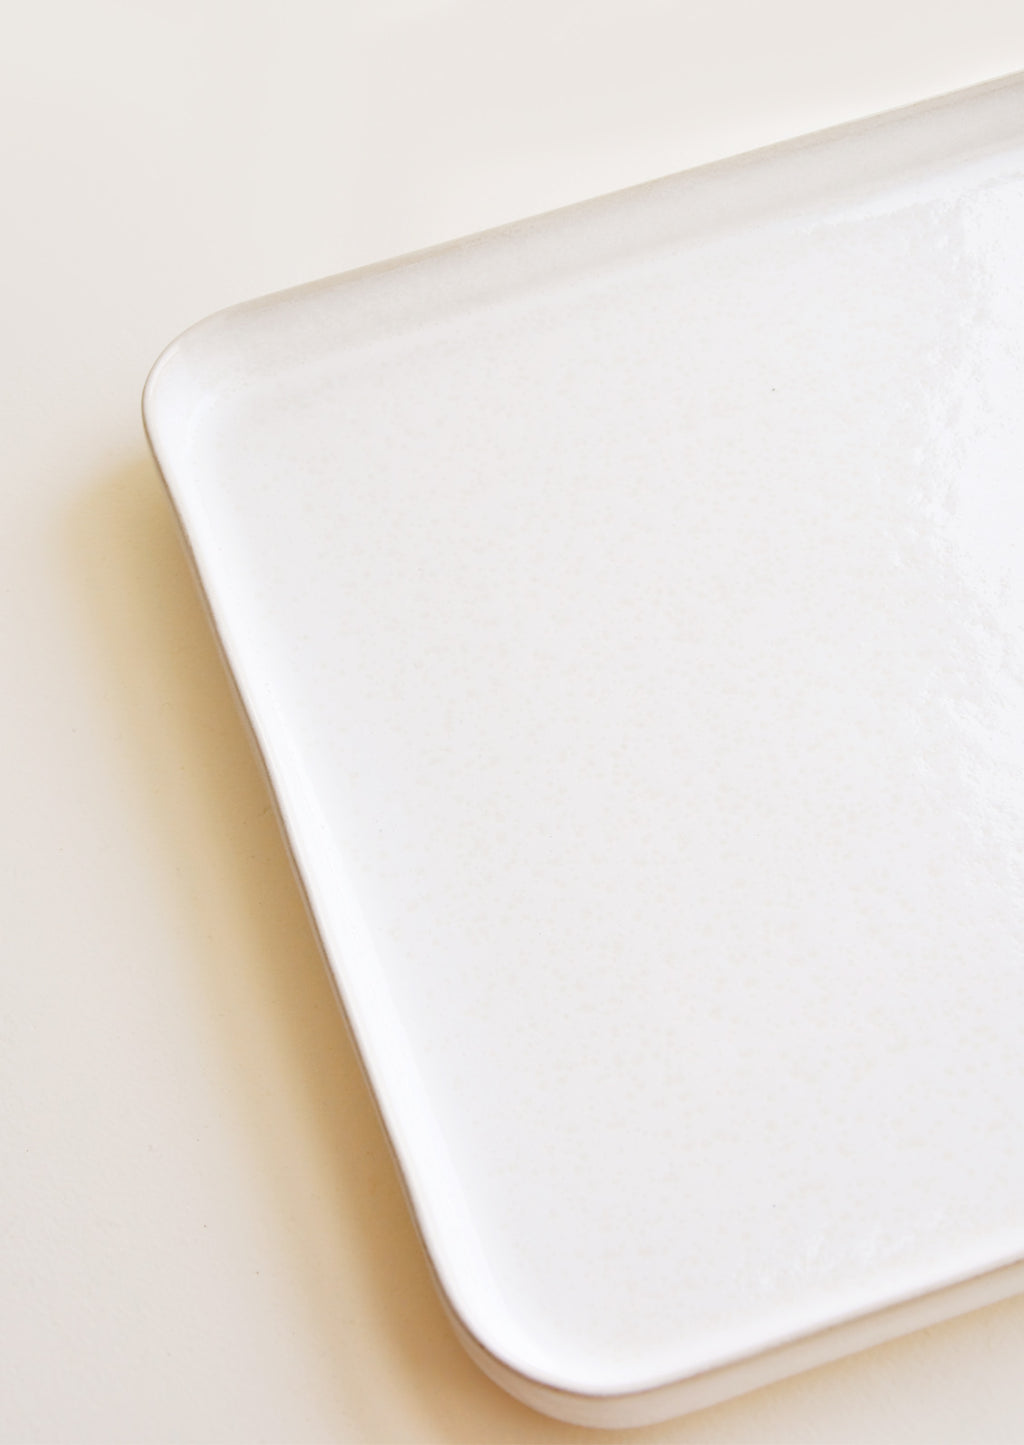 2: Detail of Square Ceramic Tray with Lipped Edge in Ivory.